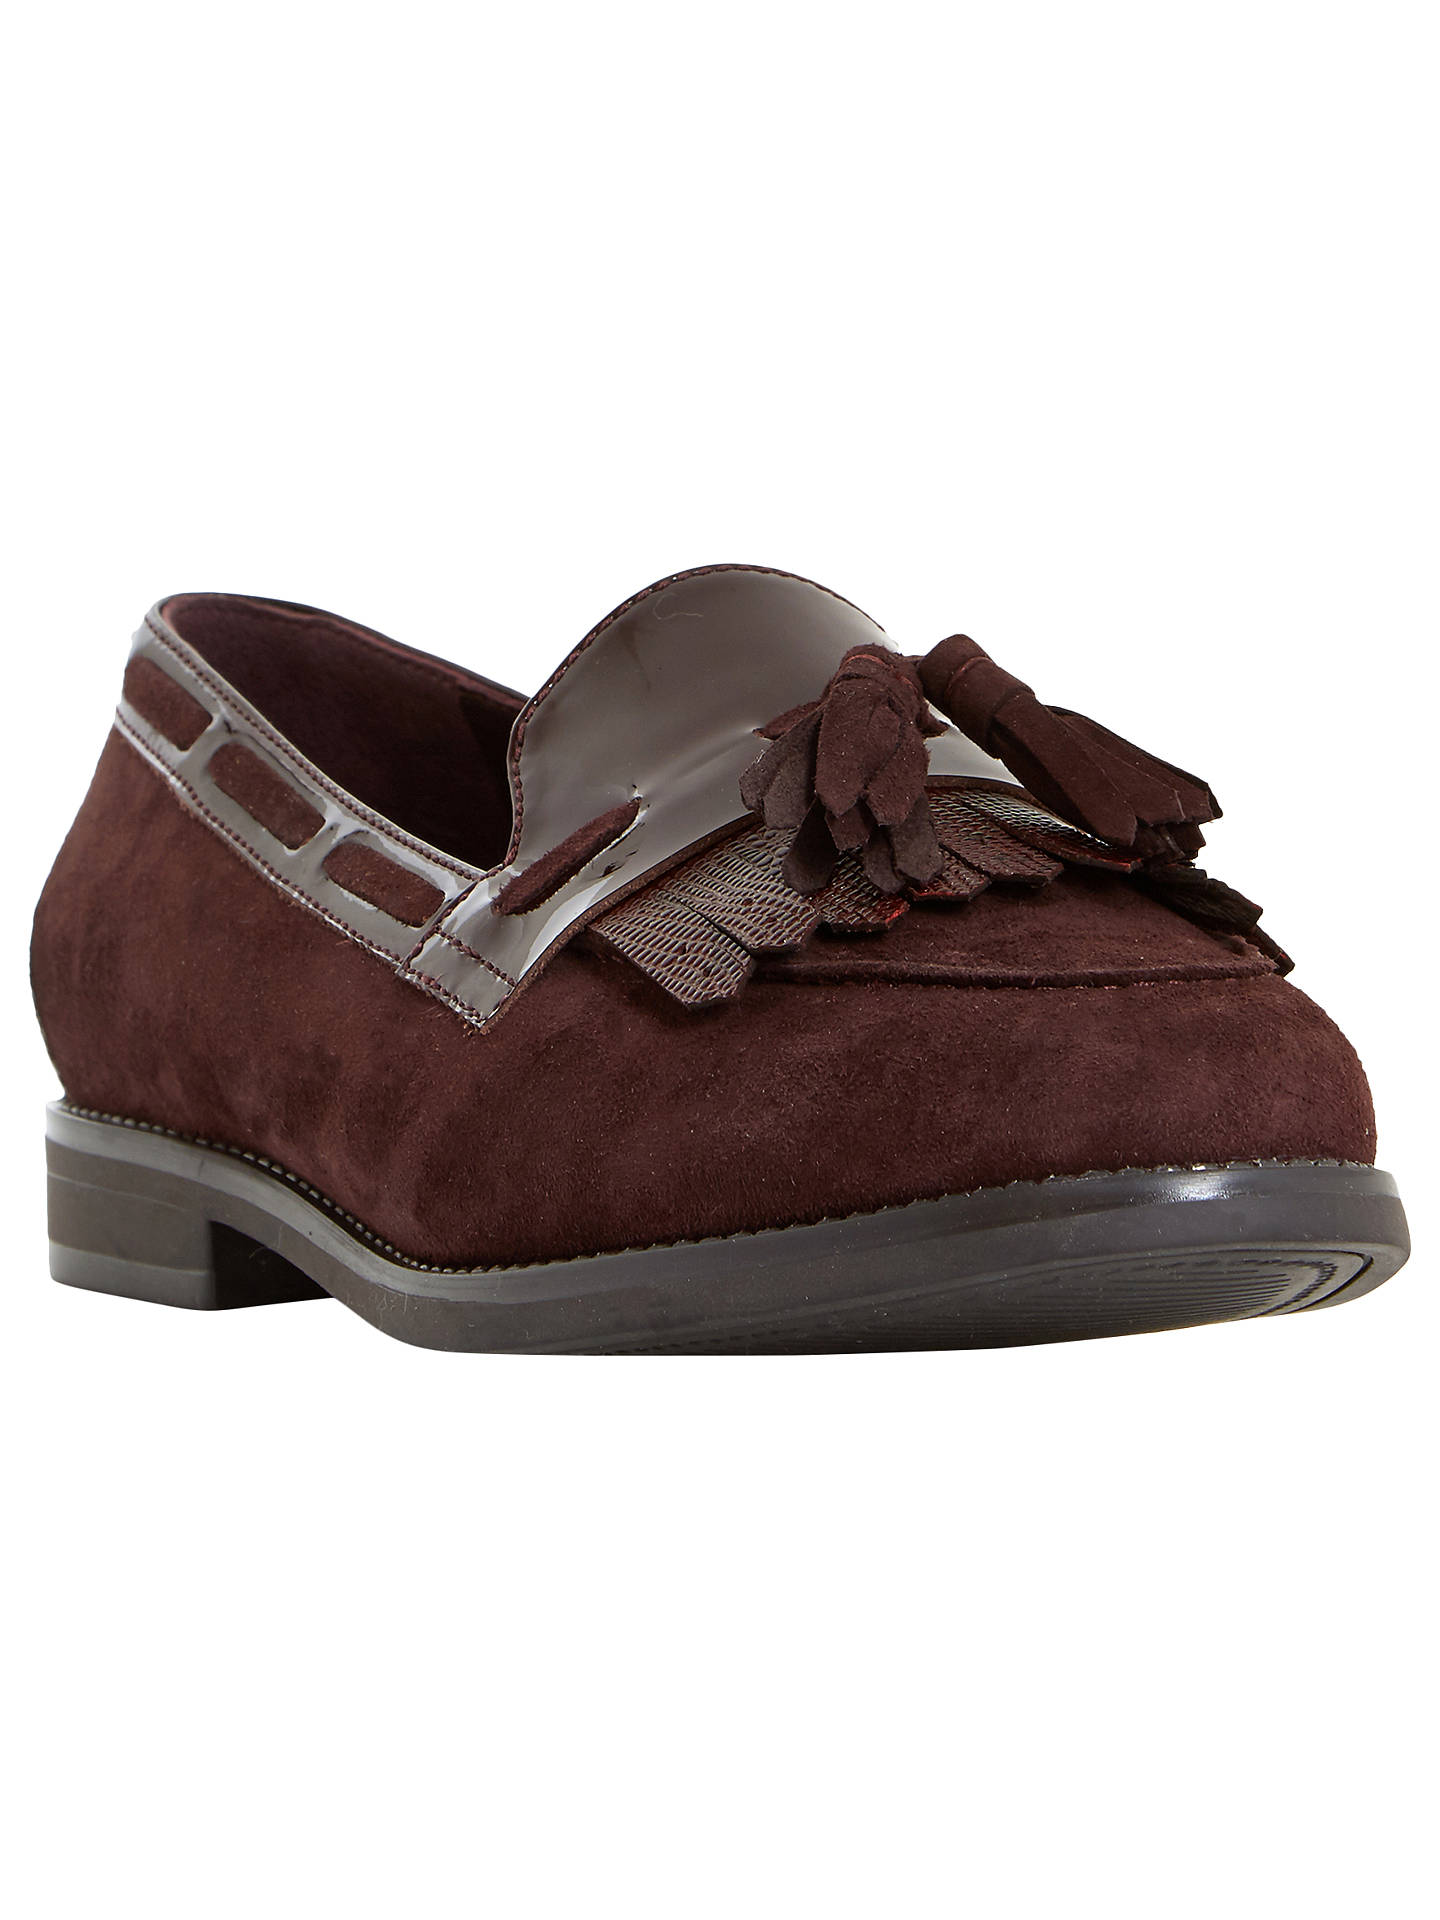 5f18384be Buy Dune Wide Fit Goodness Loafers, Burgundy, 5 Online at johnlewis.com ...